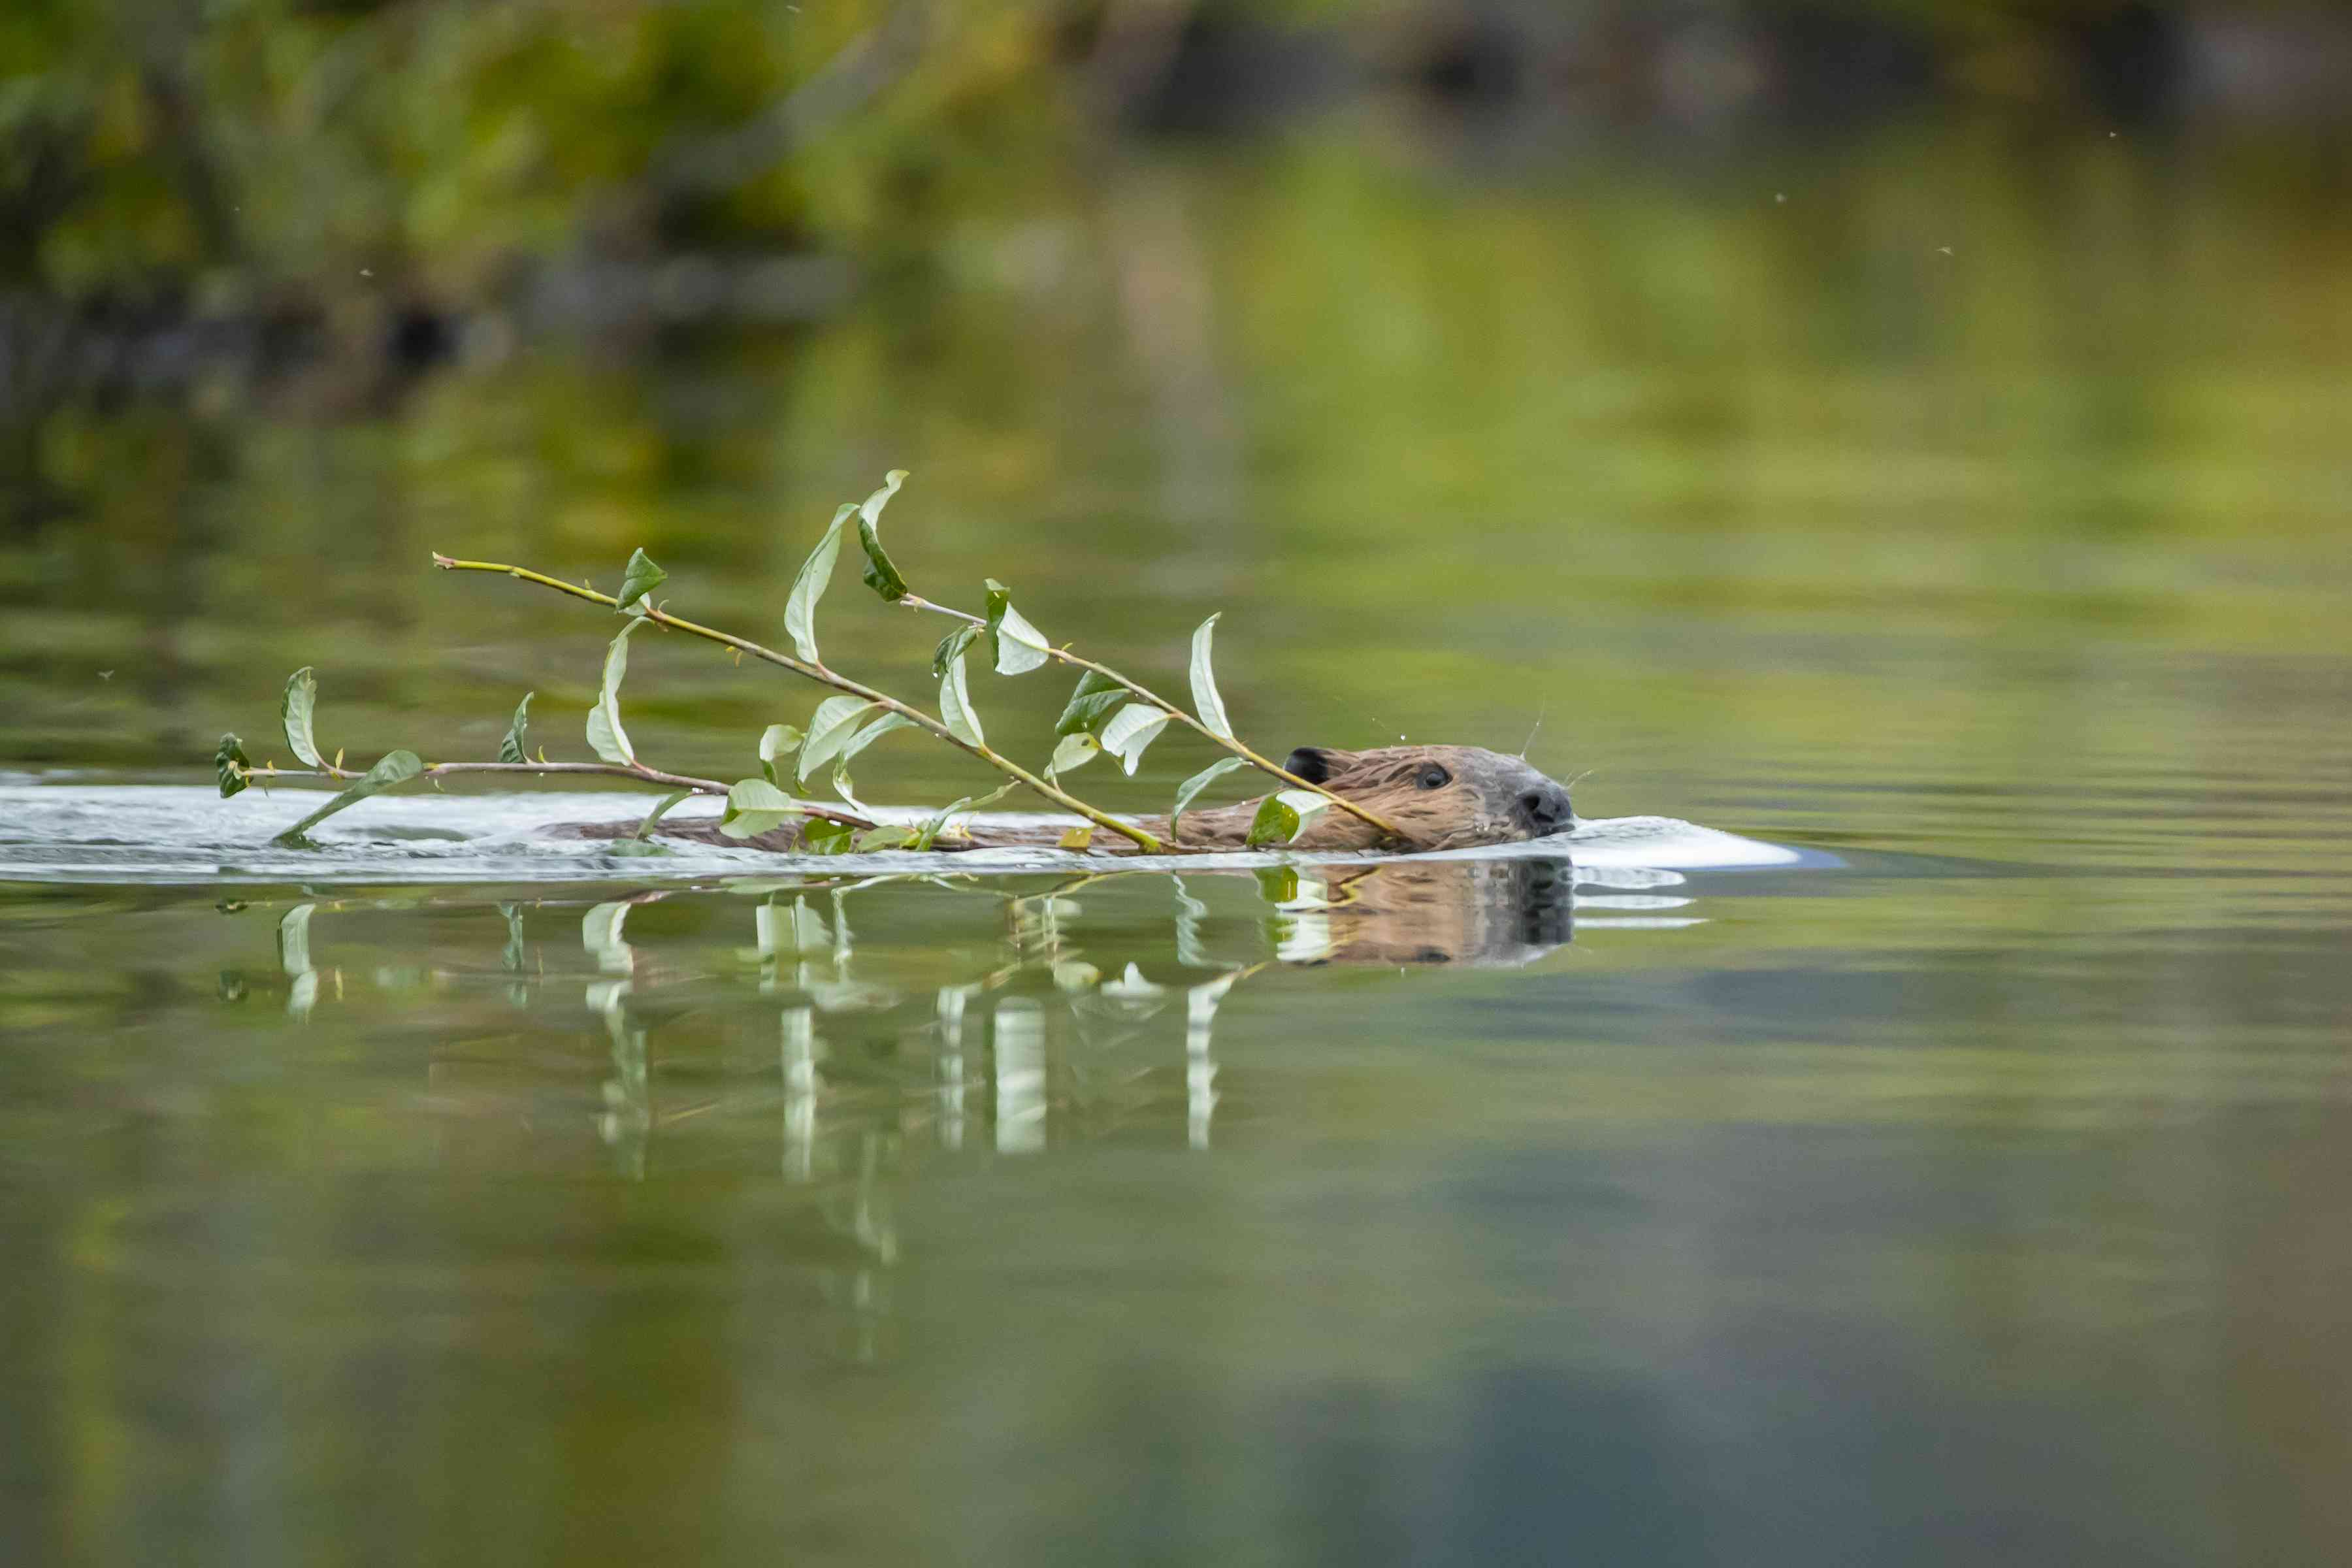 Beaver swimming in water carrying a small branch with leaves